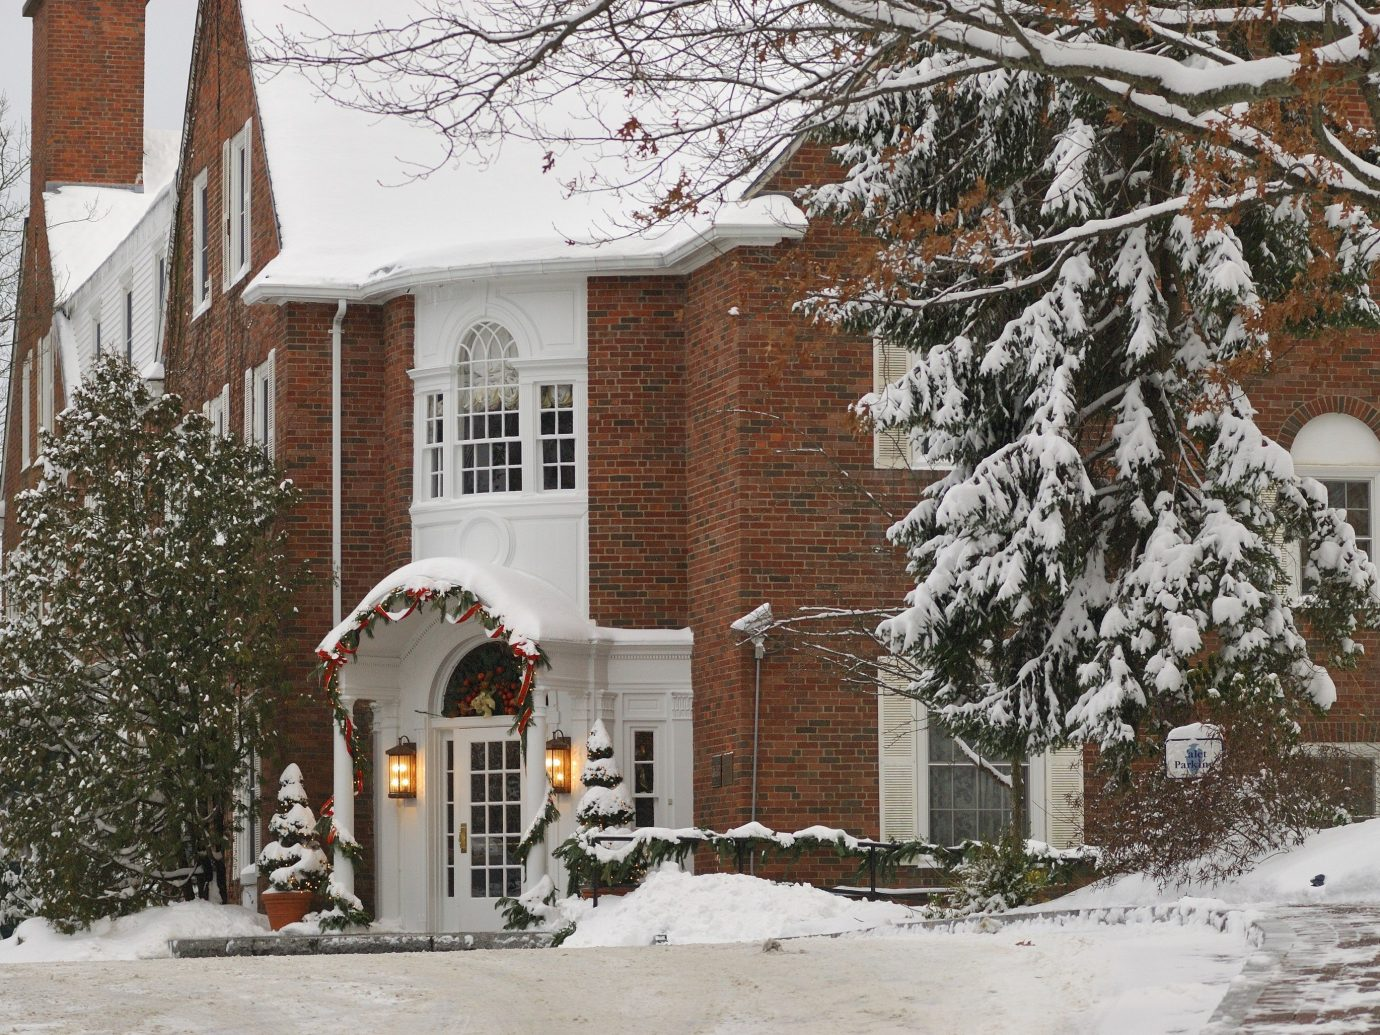 Health + Wellness Spa Retreats Trip Ideas snow outdoor tree building house Winter weather covered home season neighbourhood winter storm blizzard residential area residential